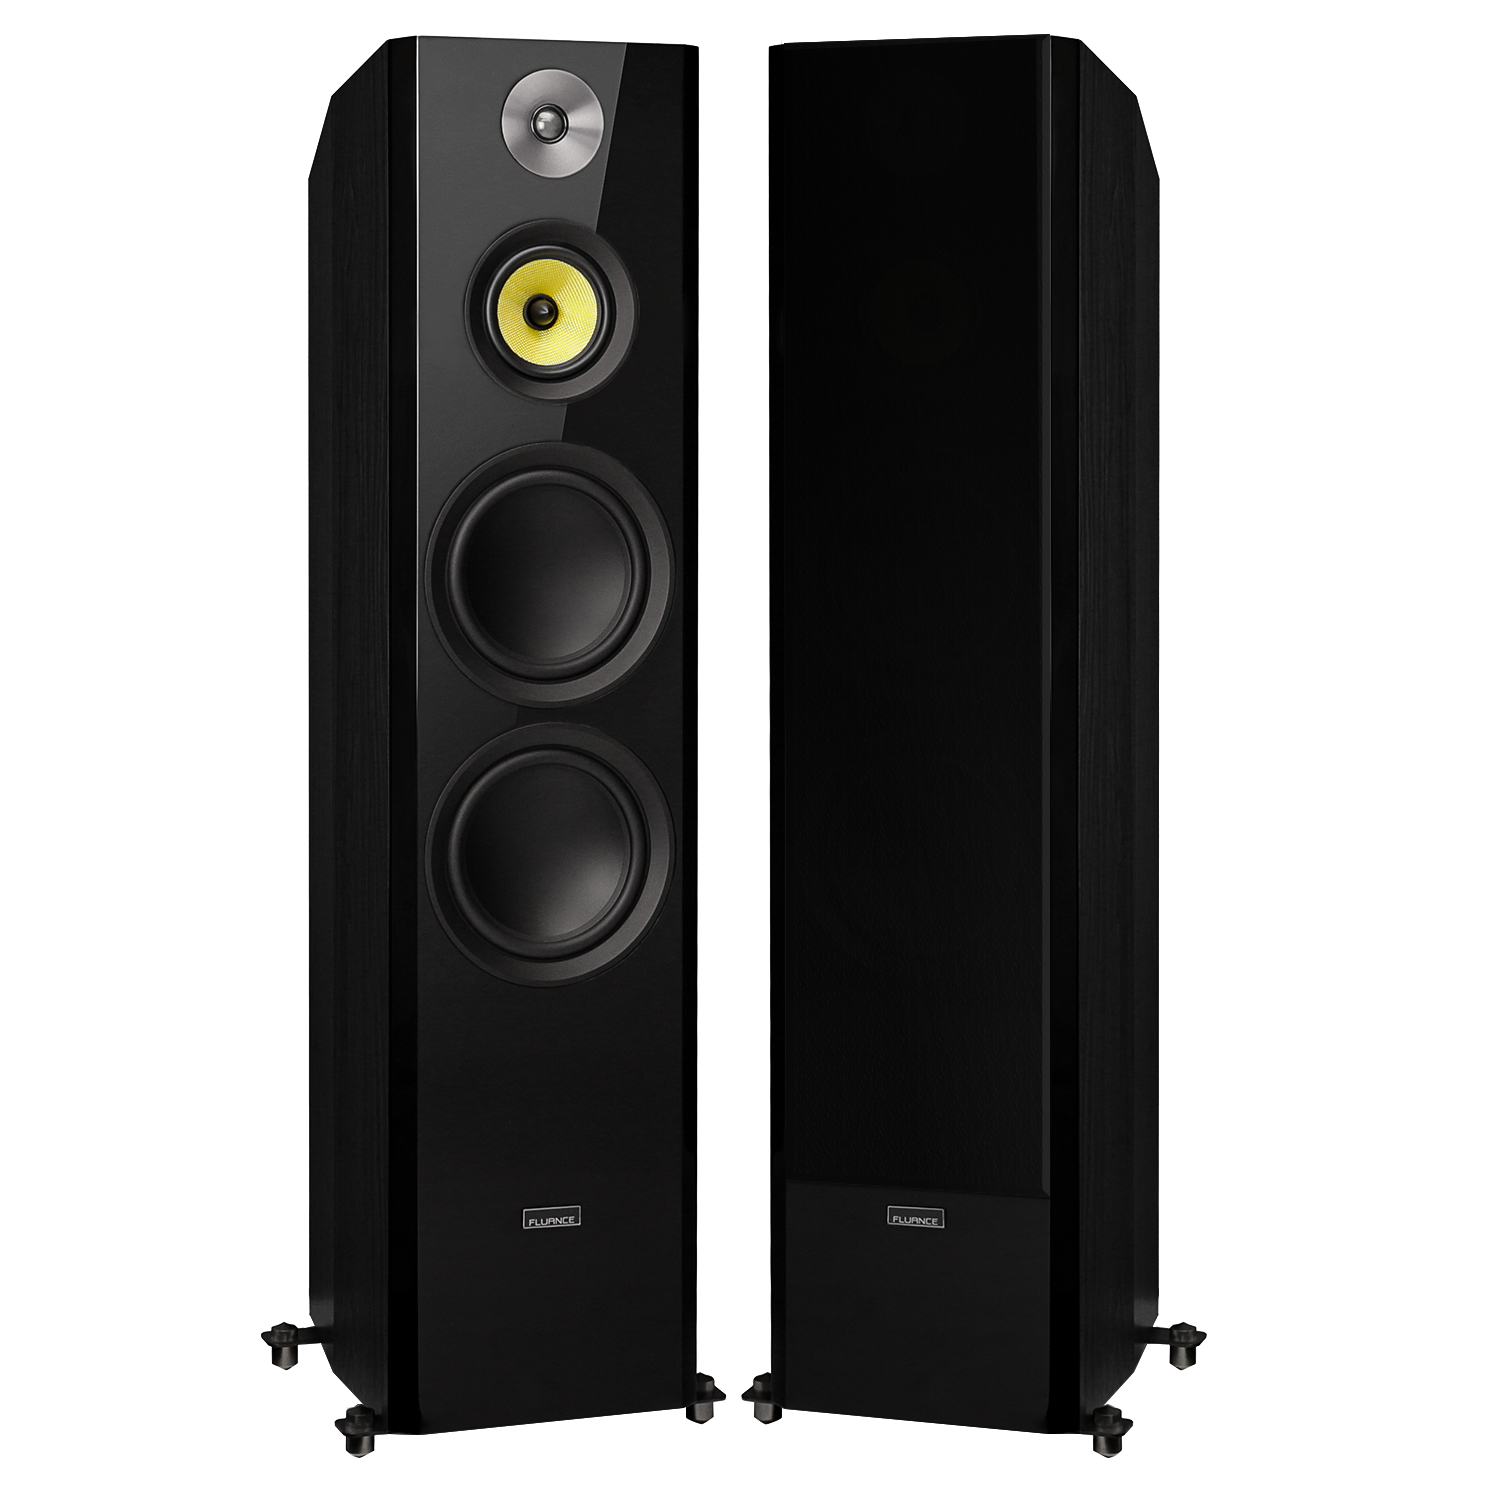 audio systems floor vm speakers tower standing watch floors bluetooth elux active youtube